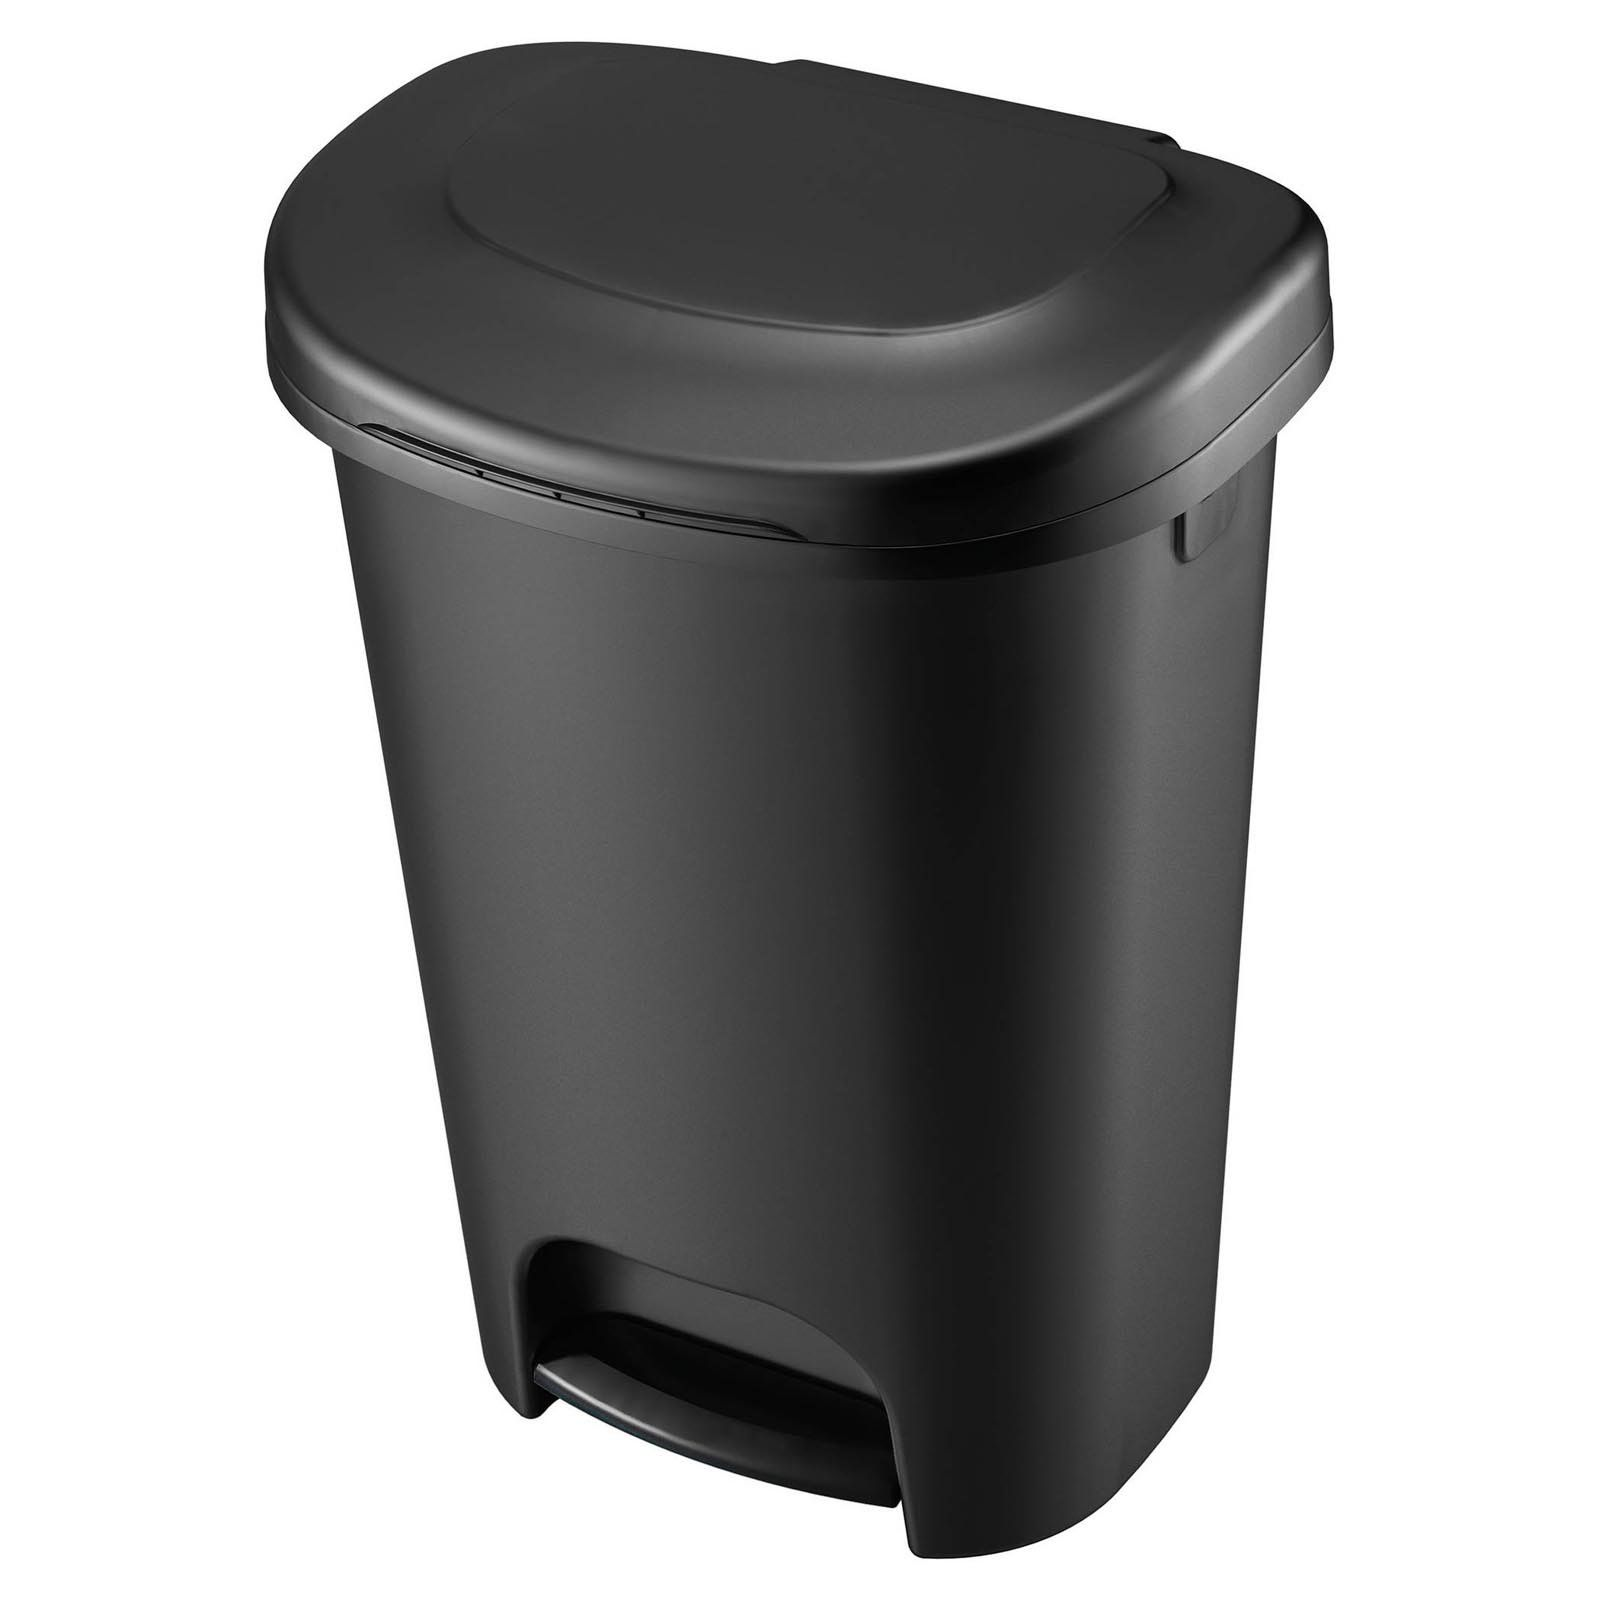 Rubbermaid 13 Gallon Step On Wastebasket Black Garbage Can Kitchen Trash Cans Canning